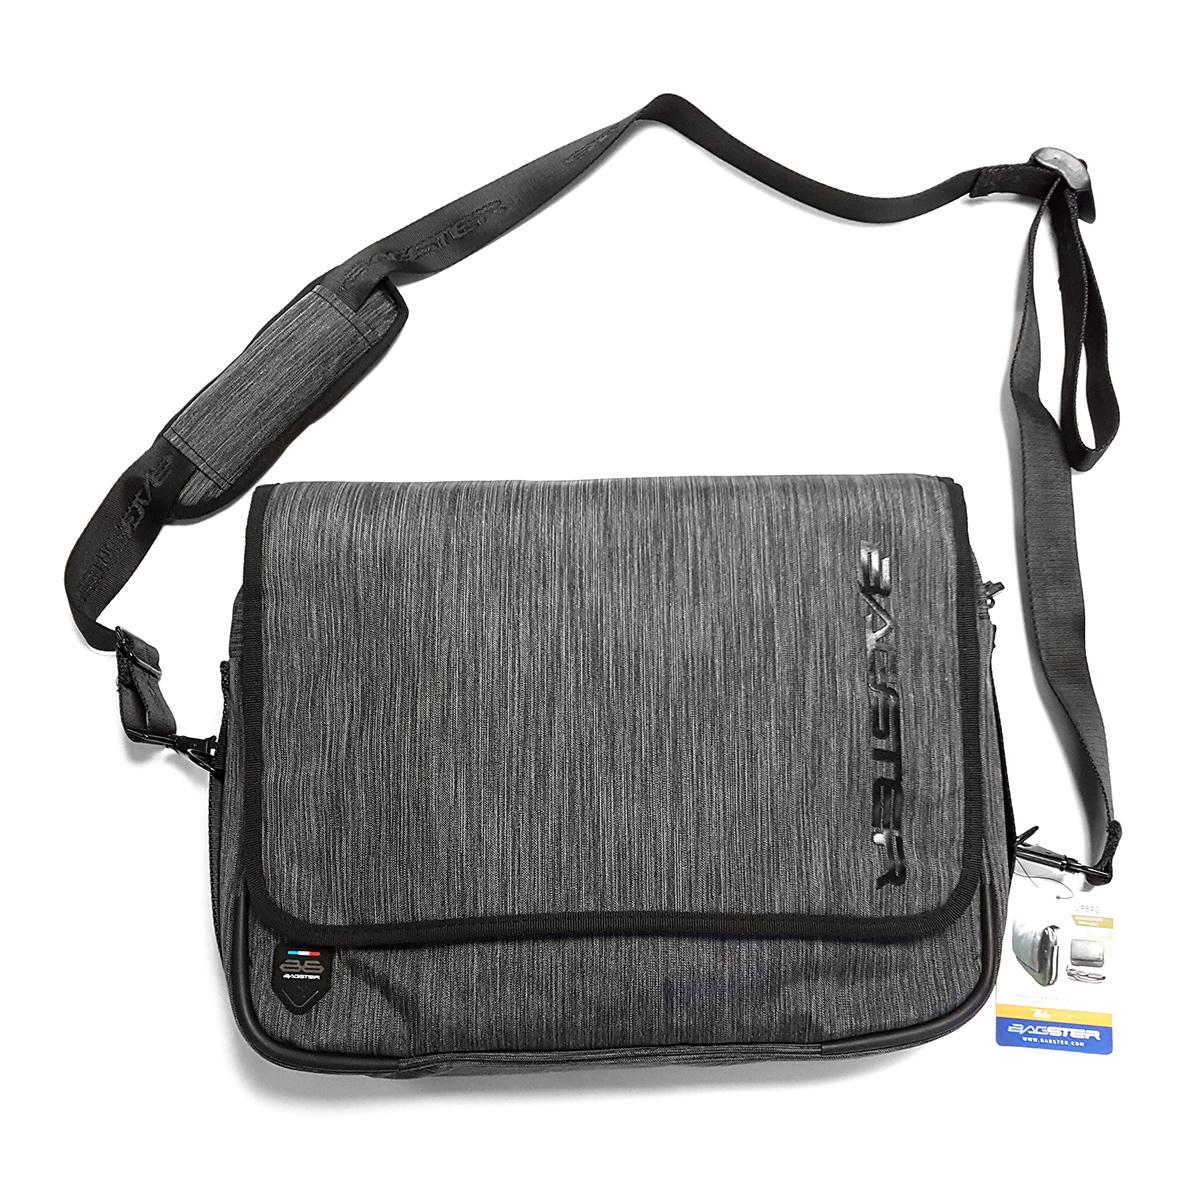 758bac7ddfca Details about Bagster Urbag Water Resistant Motorcycle Messenger Laptop Bag  - SALE